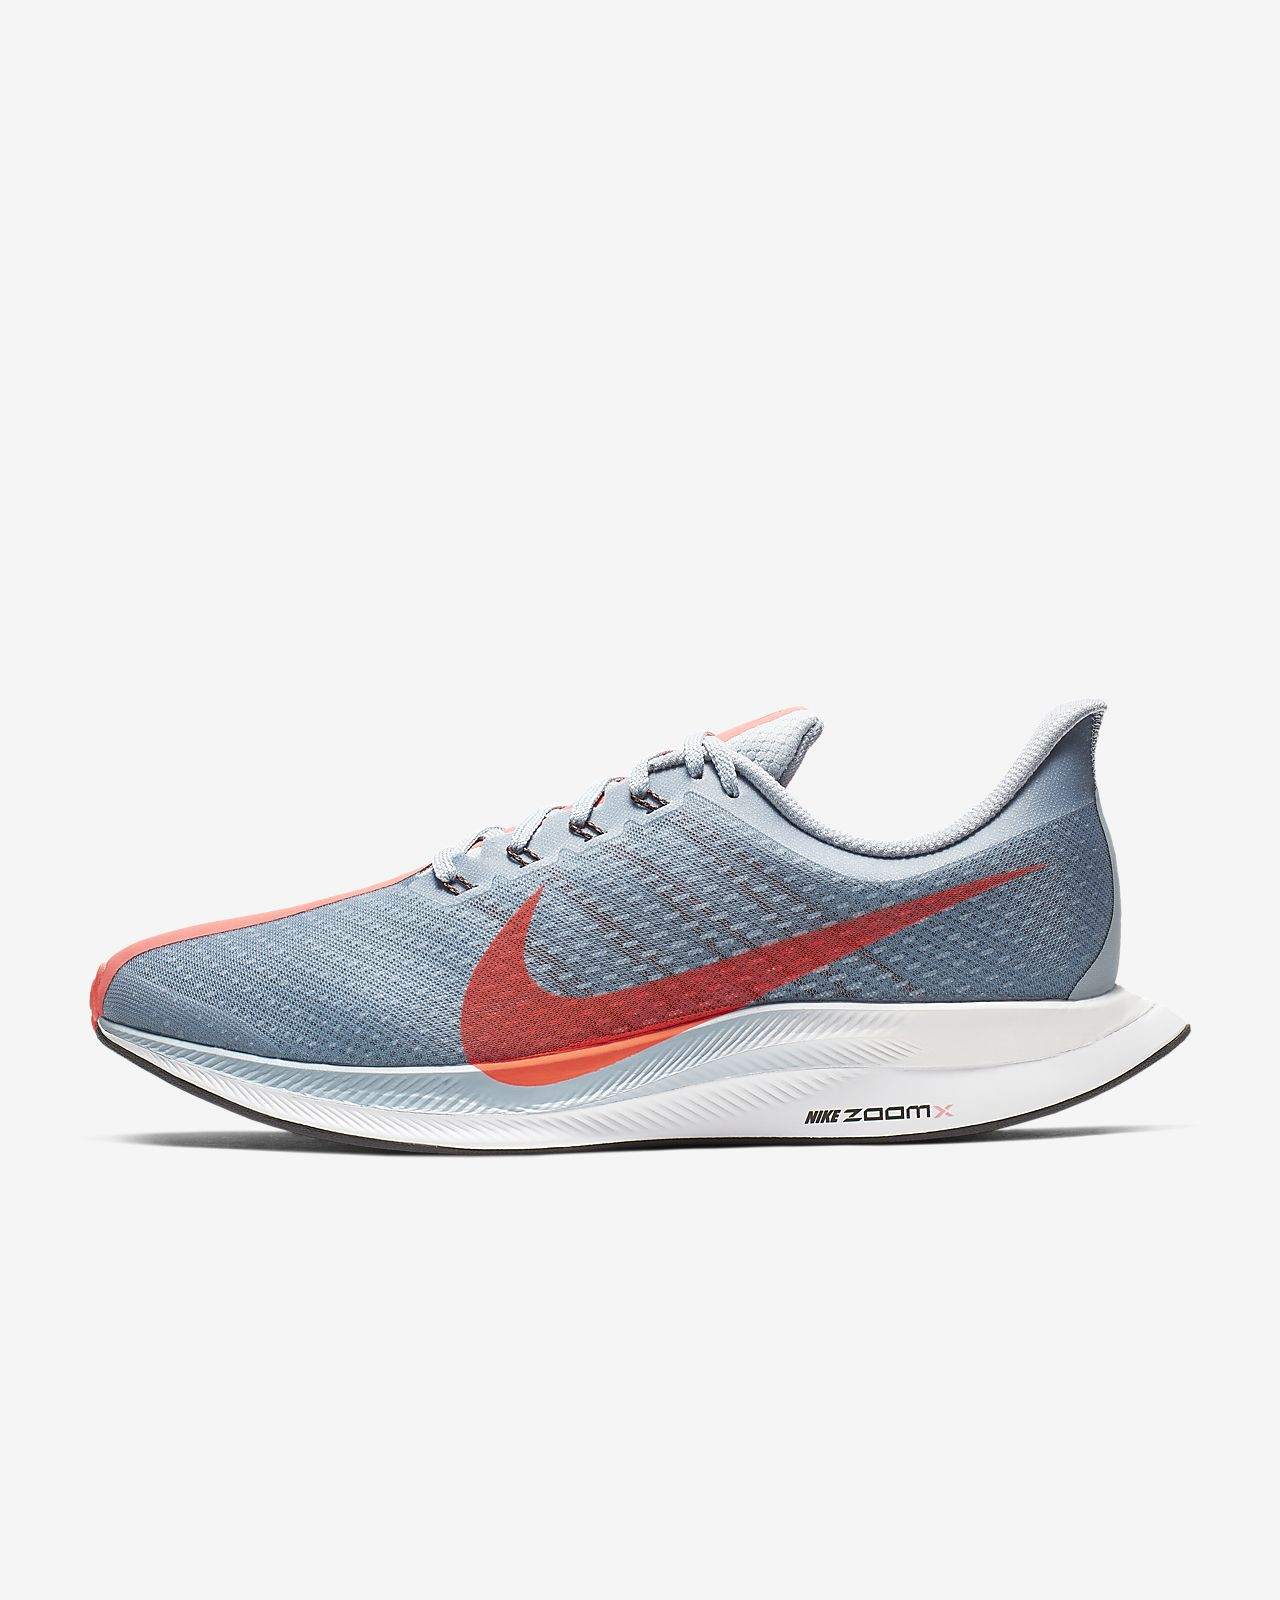 on sale f0d20 fee3b Men s Running Shoe. Nike Zoom Pegasus Turbo